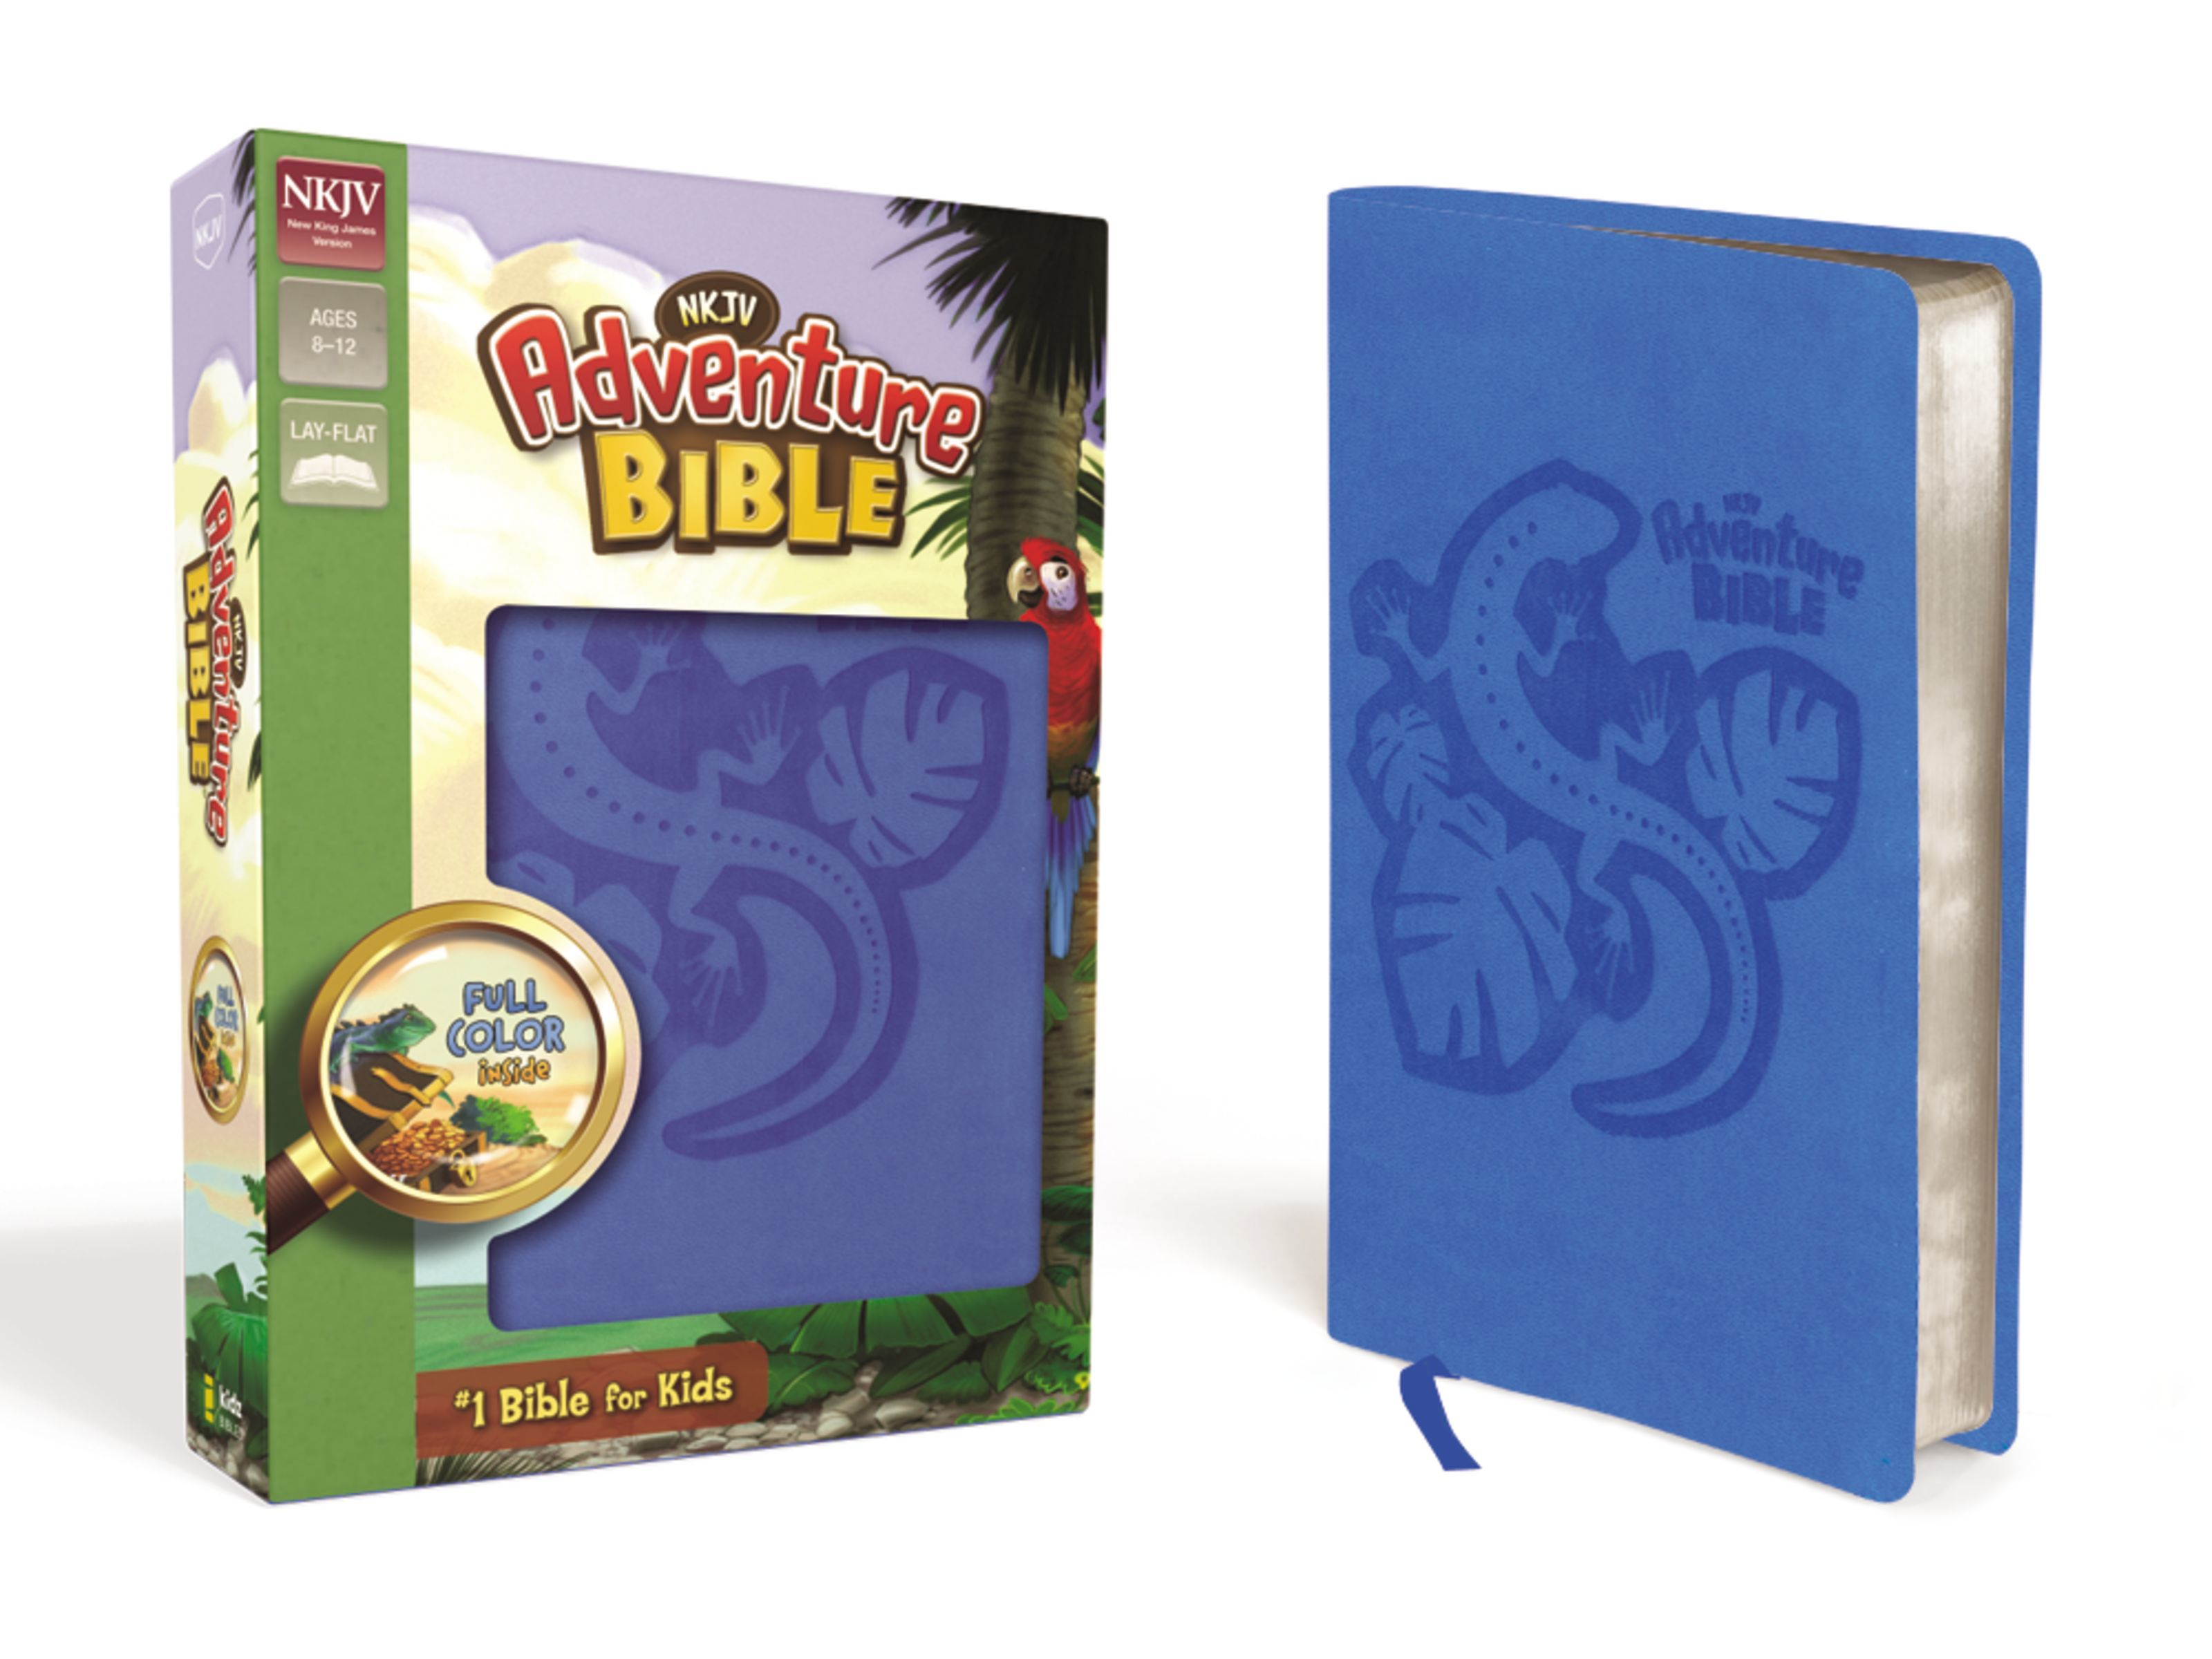 NKJV Adventure Bible- Blue Lizard